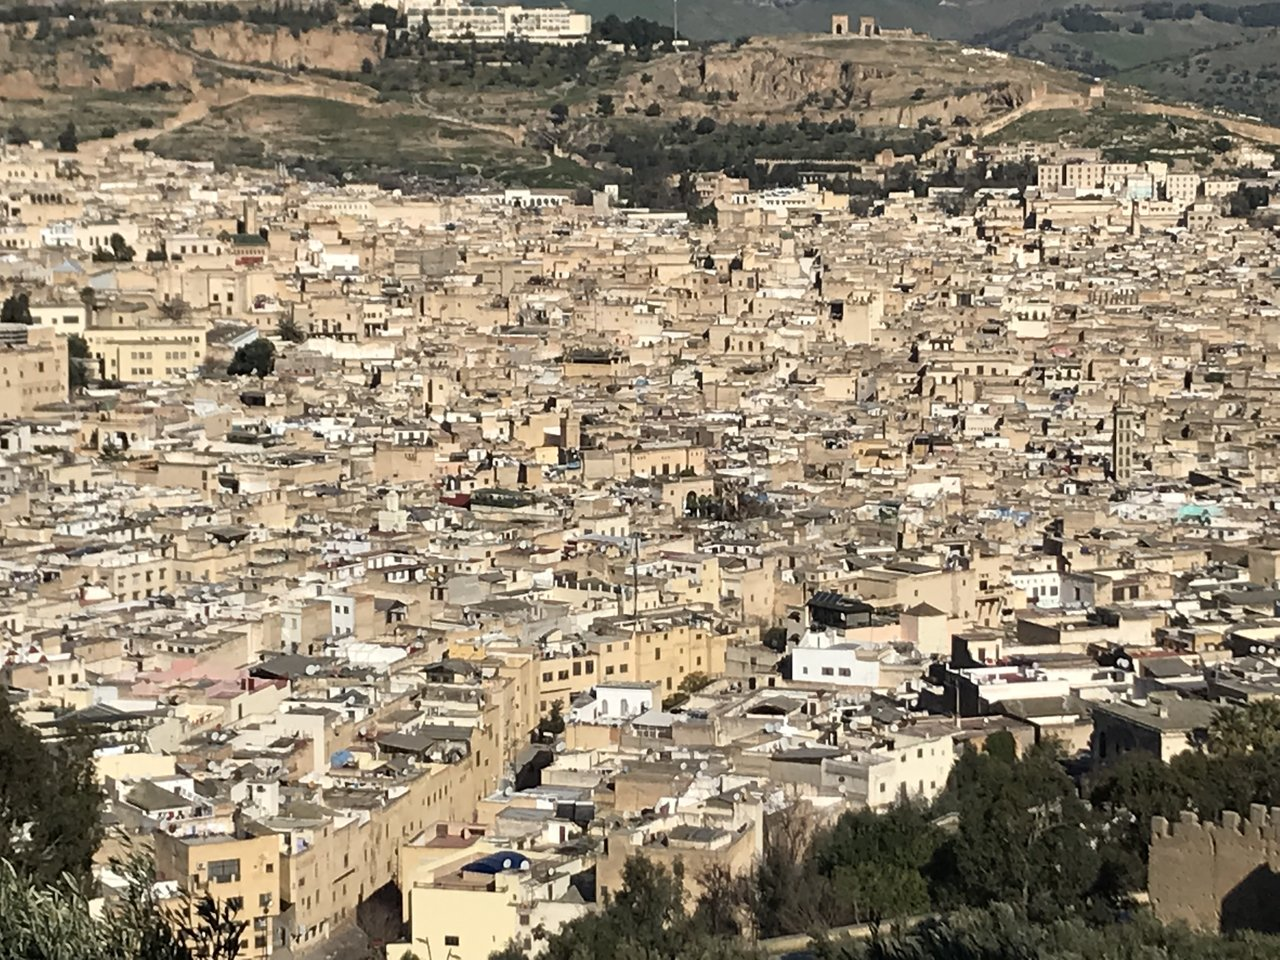 Fes Medina from Jnan El Ouard | Photo taken by Chris M